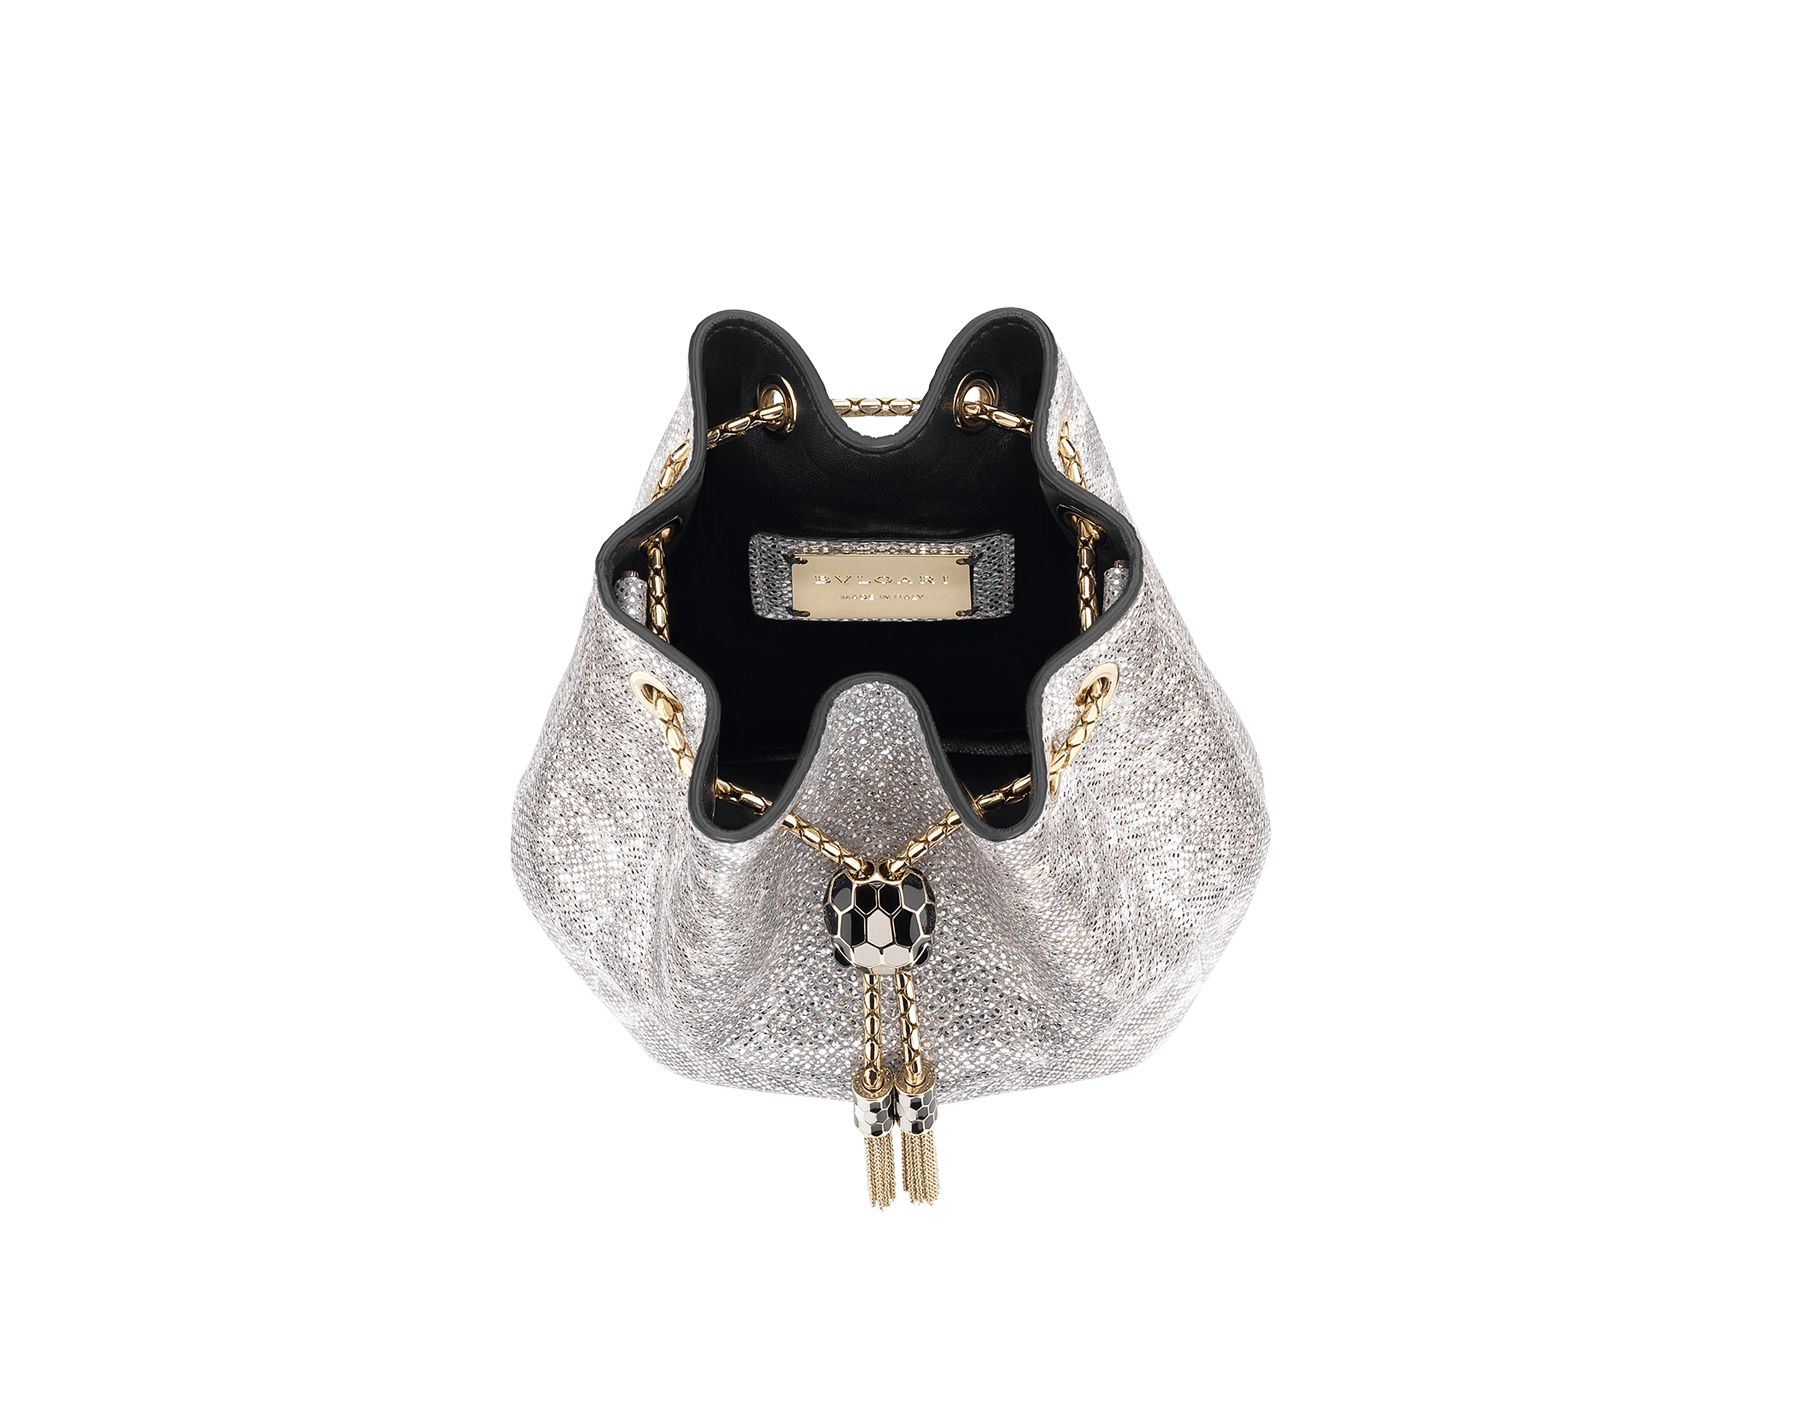 """Serpenti Forever"" micro bucket in white agate metallic karung skin and black nappa internal lining. Hardware in light gold plated brass and snakehead closure in black and white agate enamel, with eyes in black onyx. 289952 image 2"